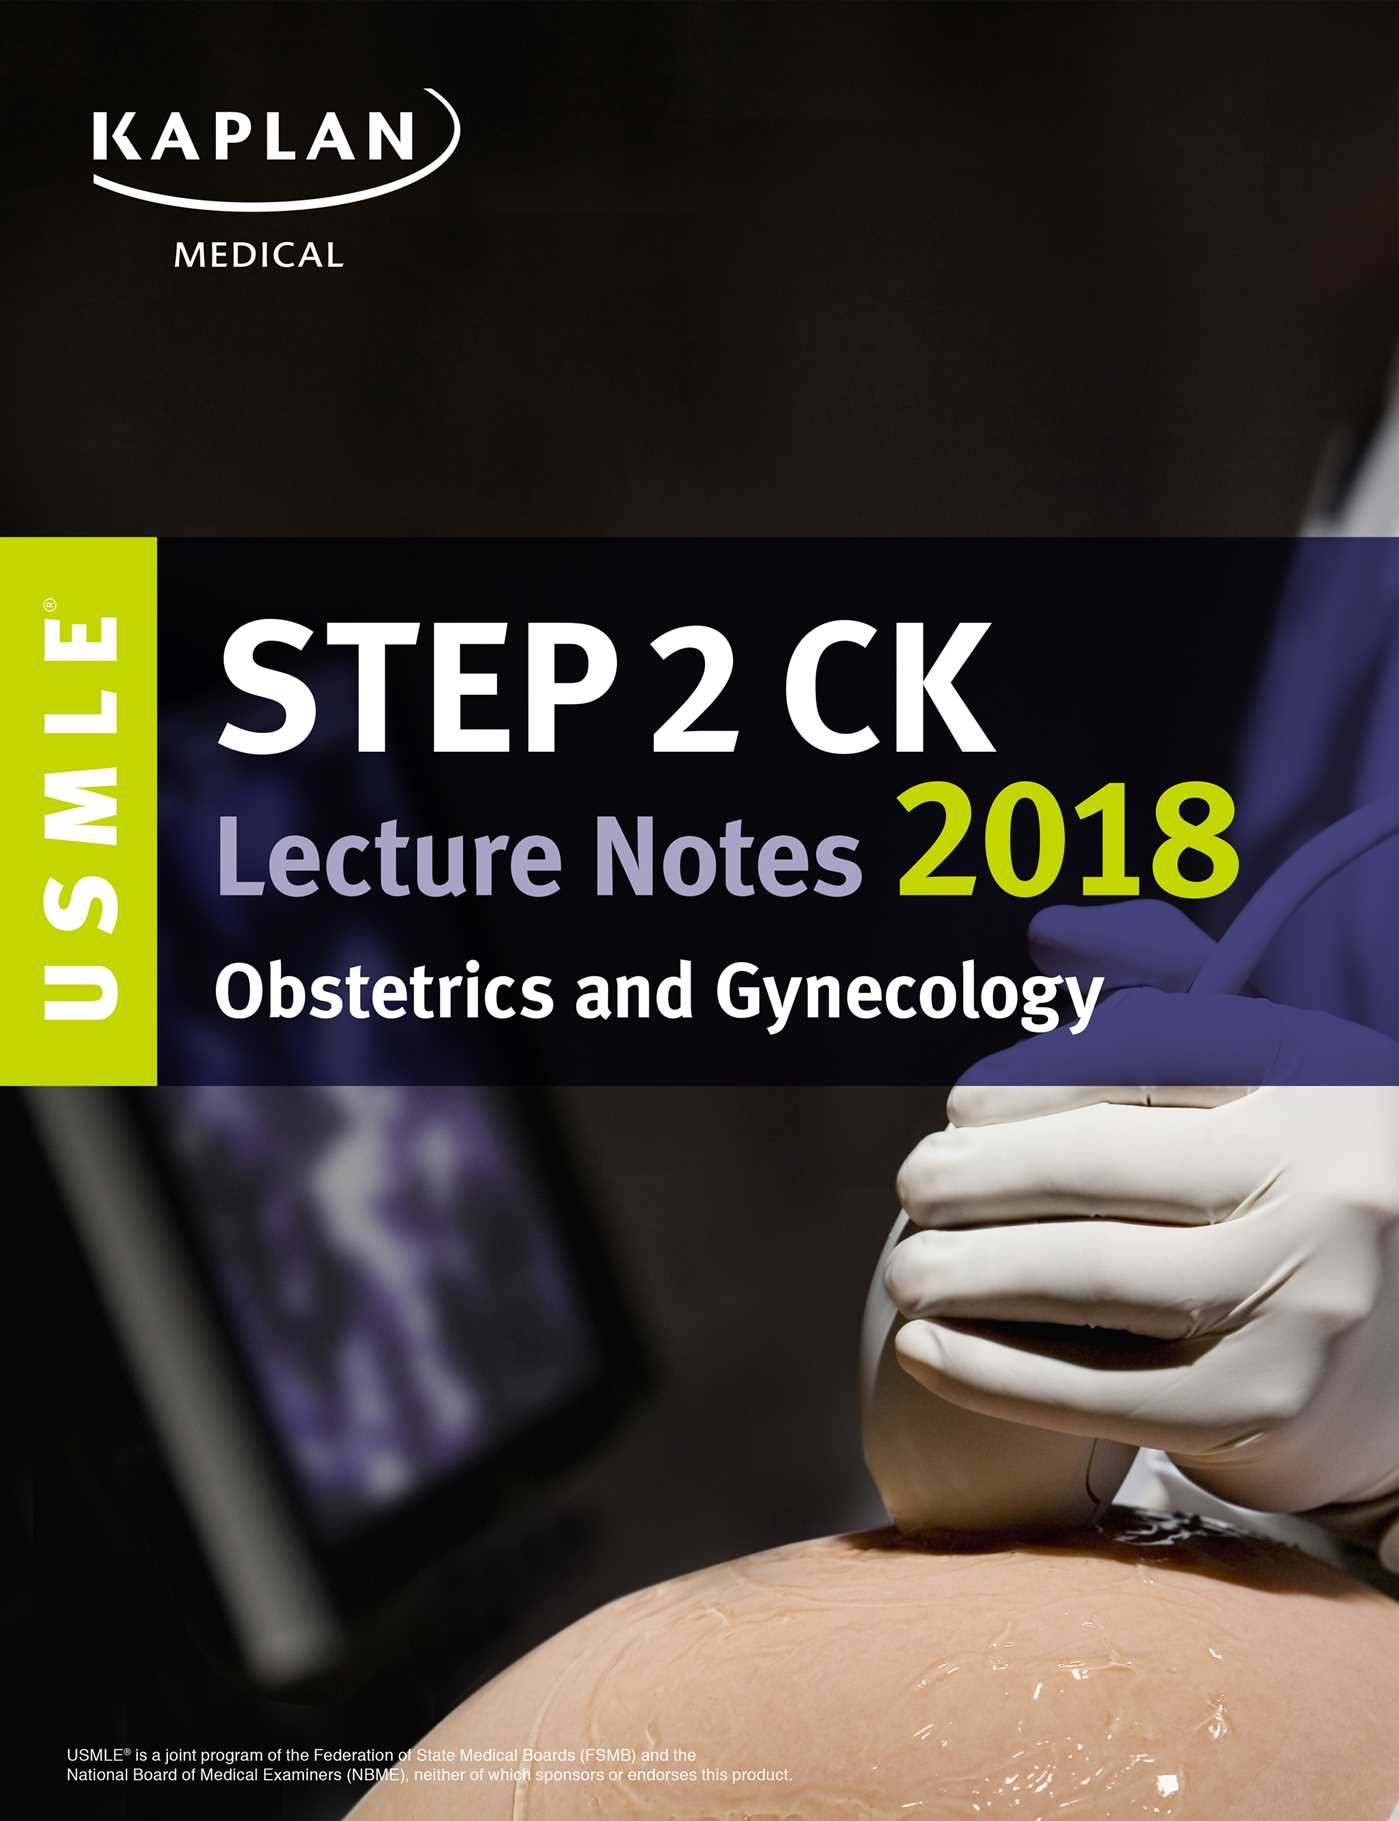 USMLE Step 2 CK Kaplan Lecture Notes 2018 Obstetrics and Gynecology